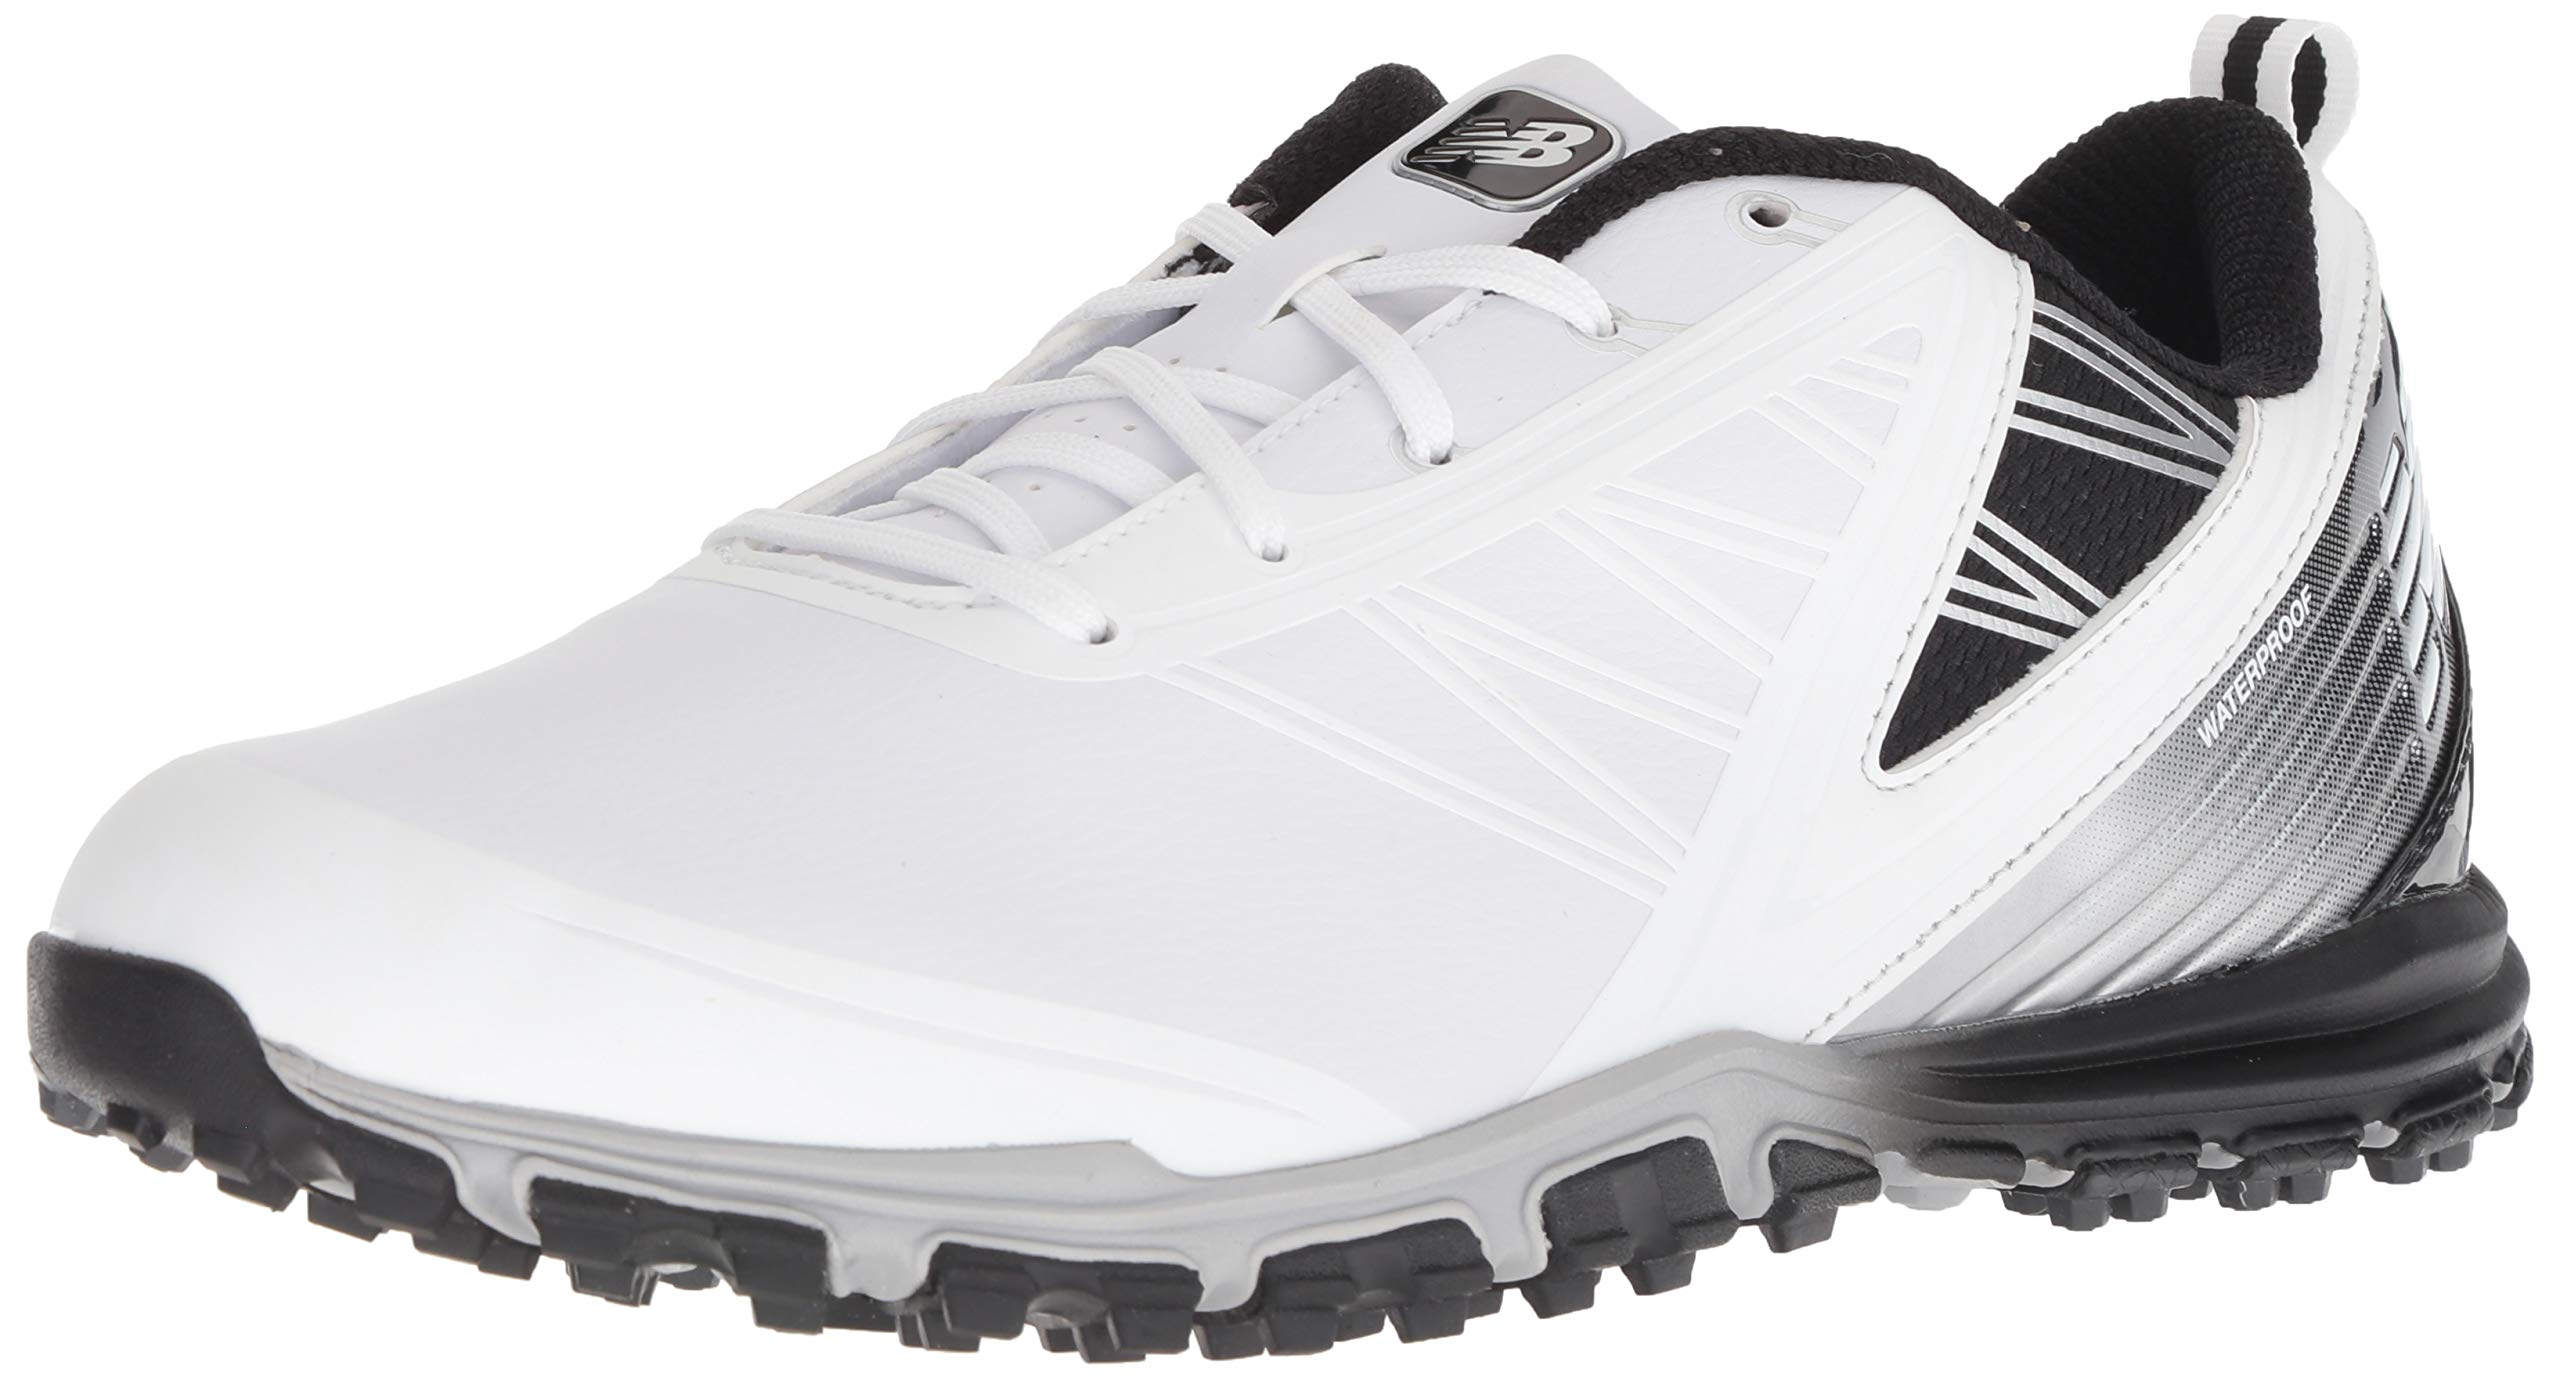 New Balance Men's Minimus SL Waterproof Spikeless Comfort Golf Shoe